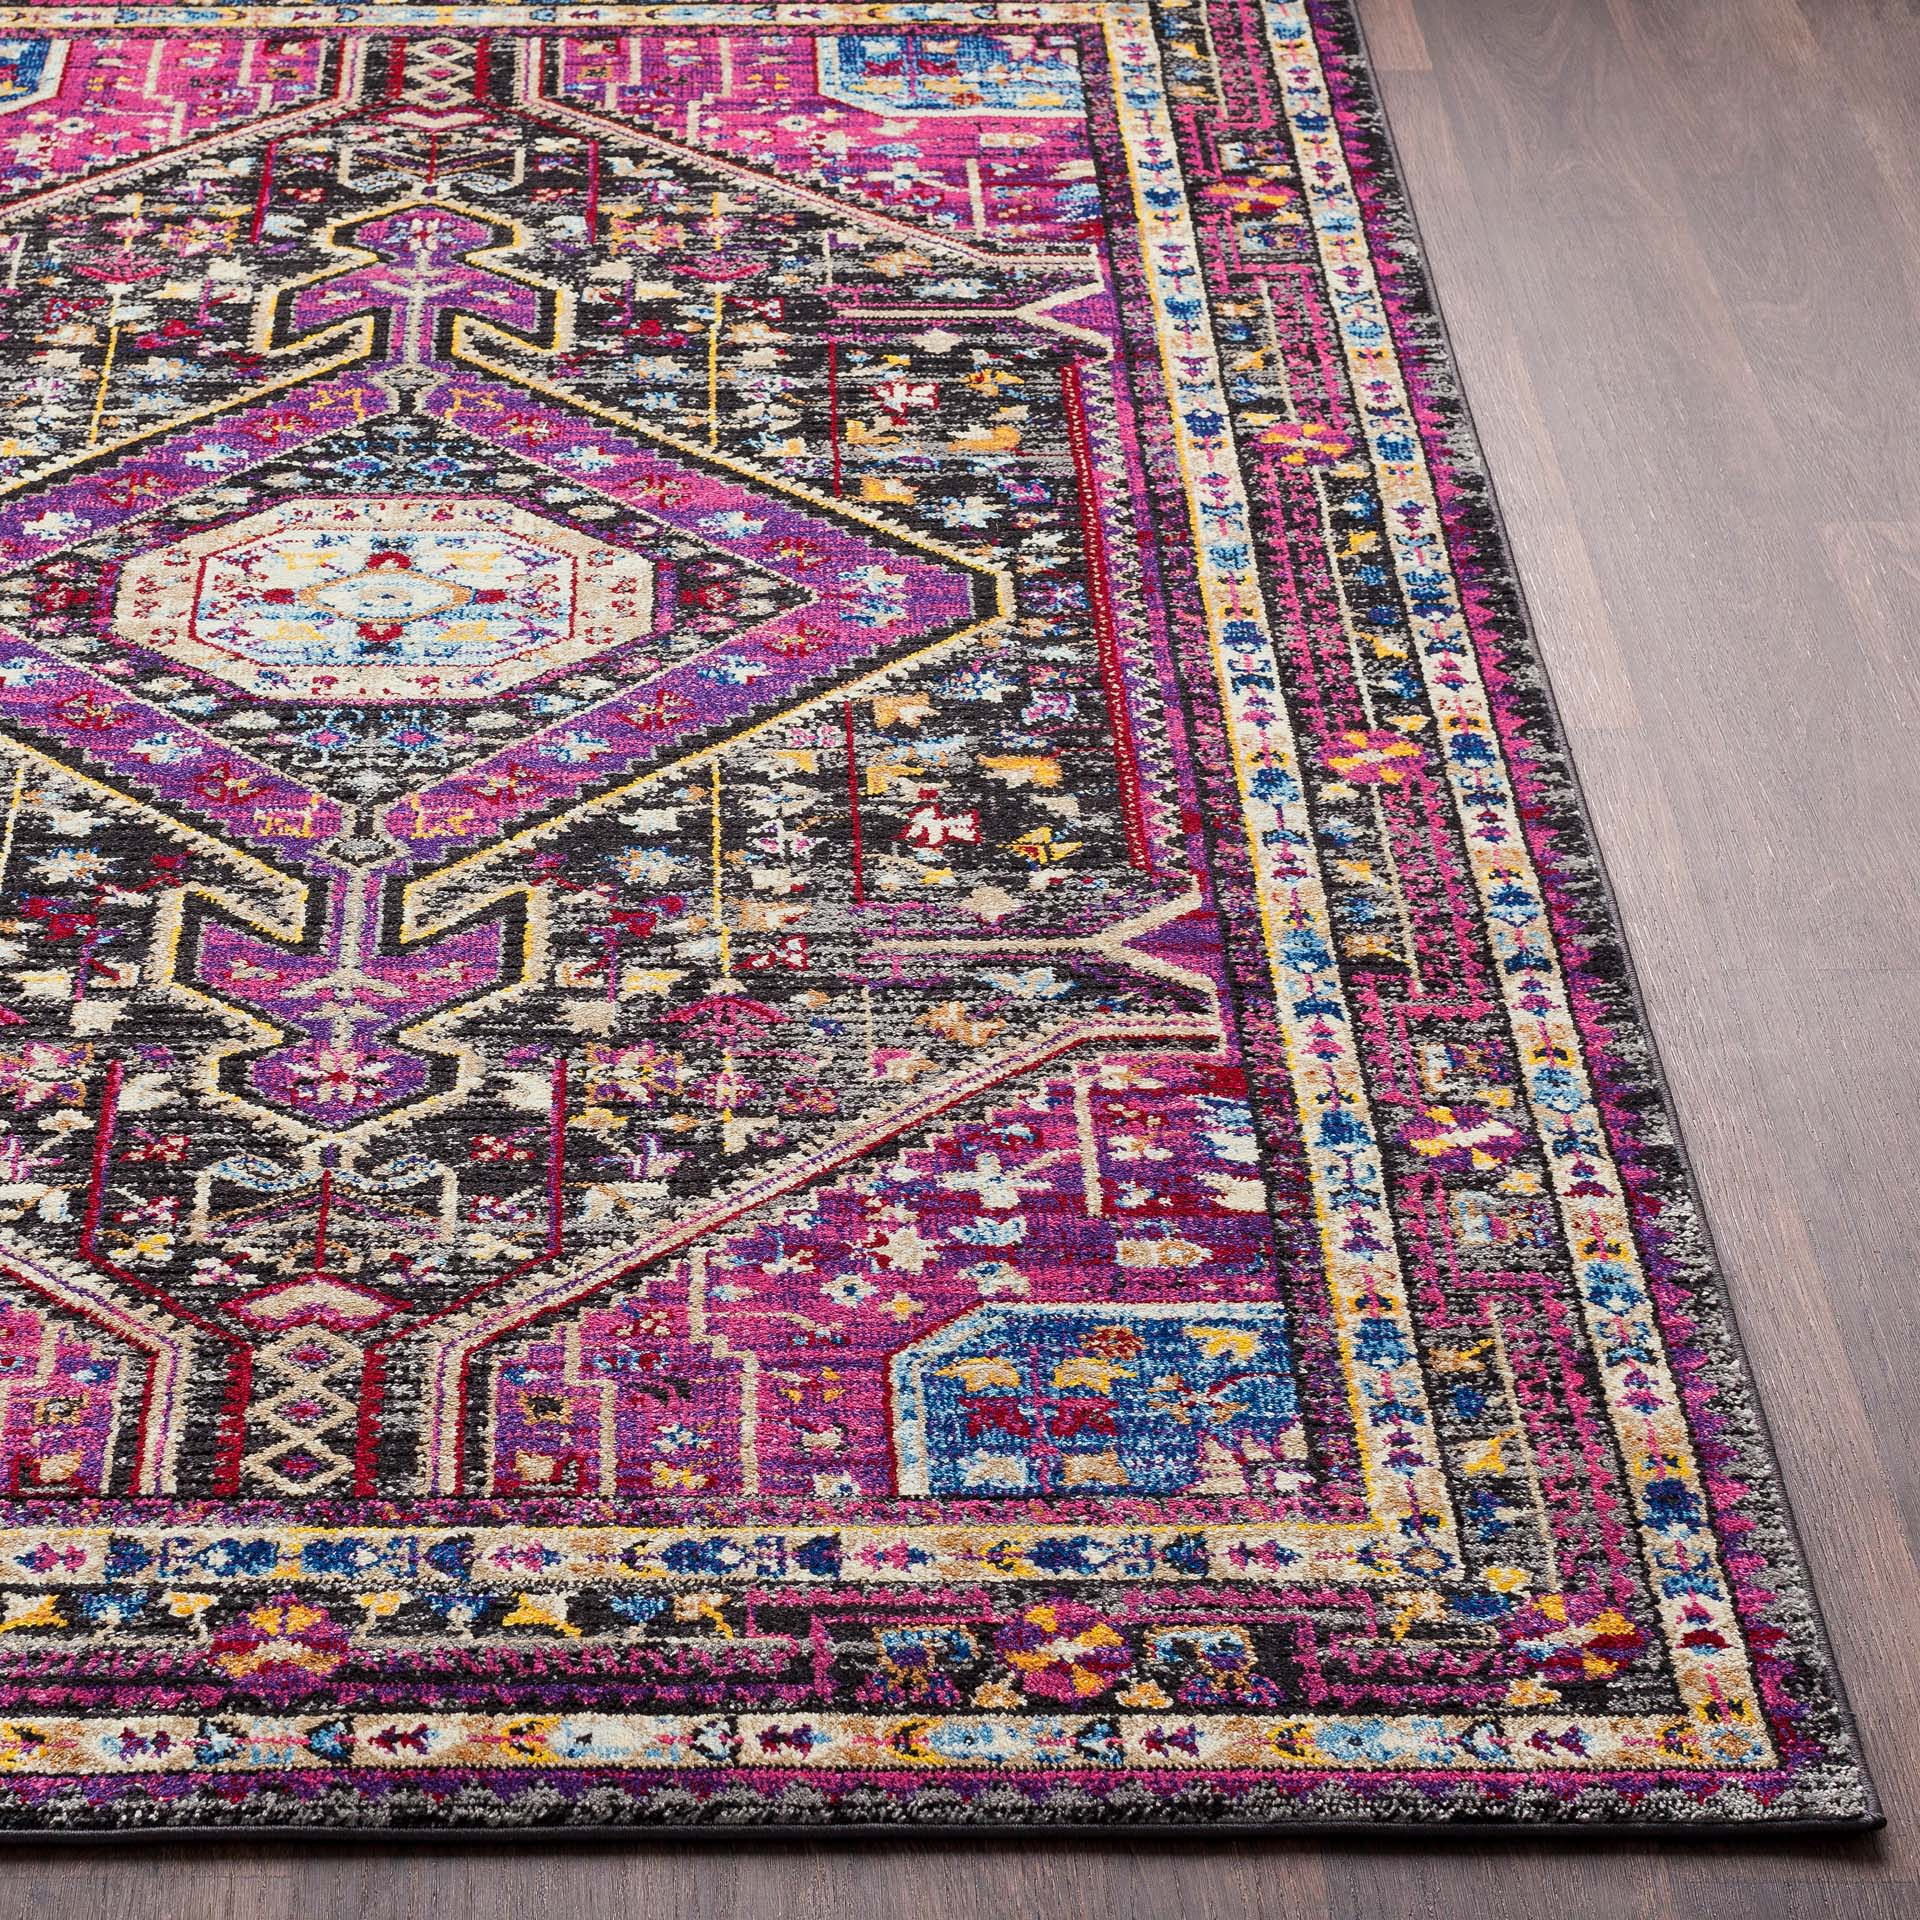 Unique and colorful Turkish 5' x 7' area rug with strong hints of pink from the Alchemy collection - Side View